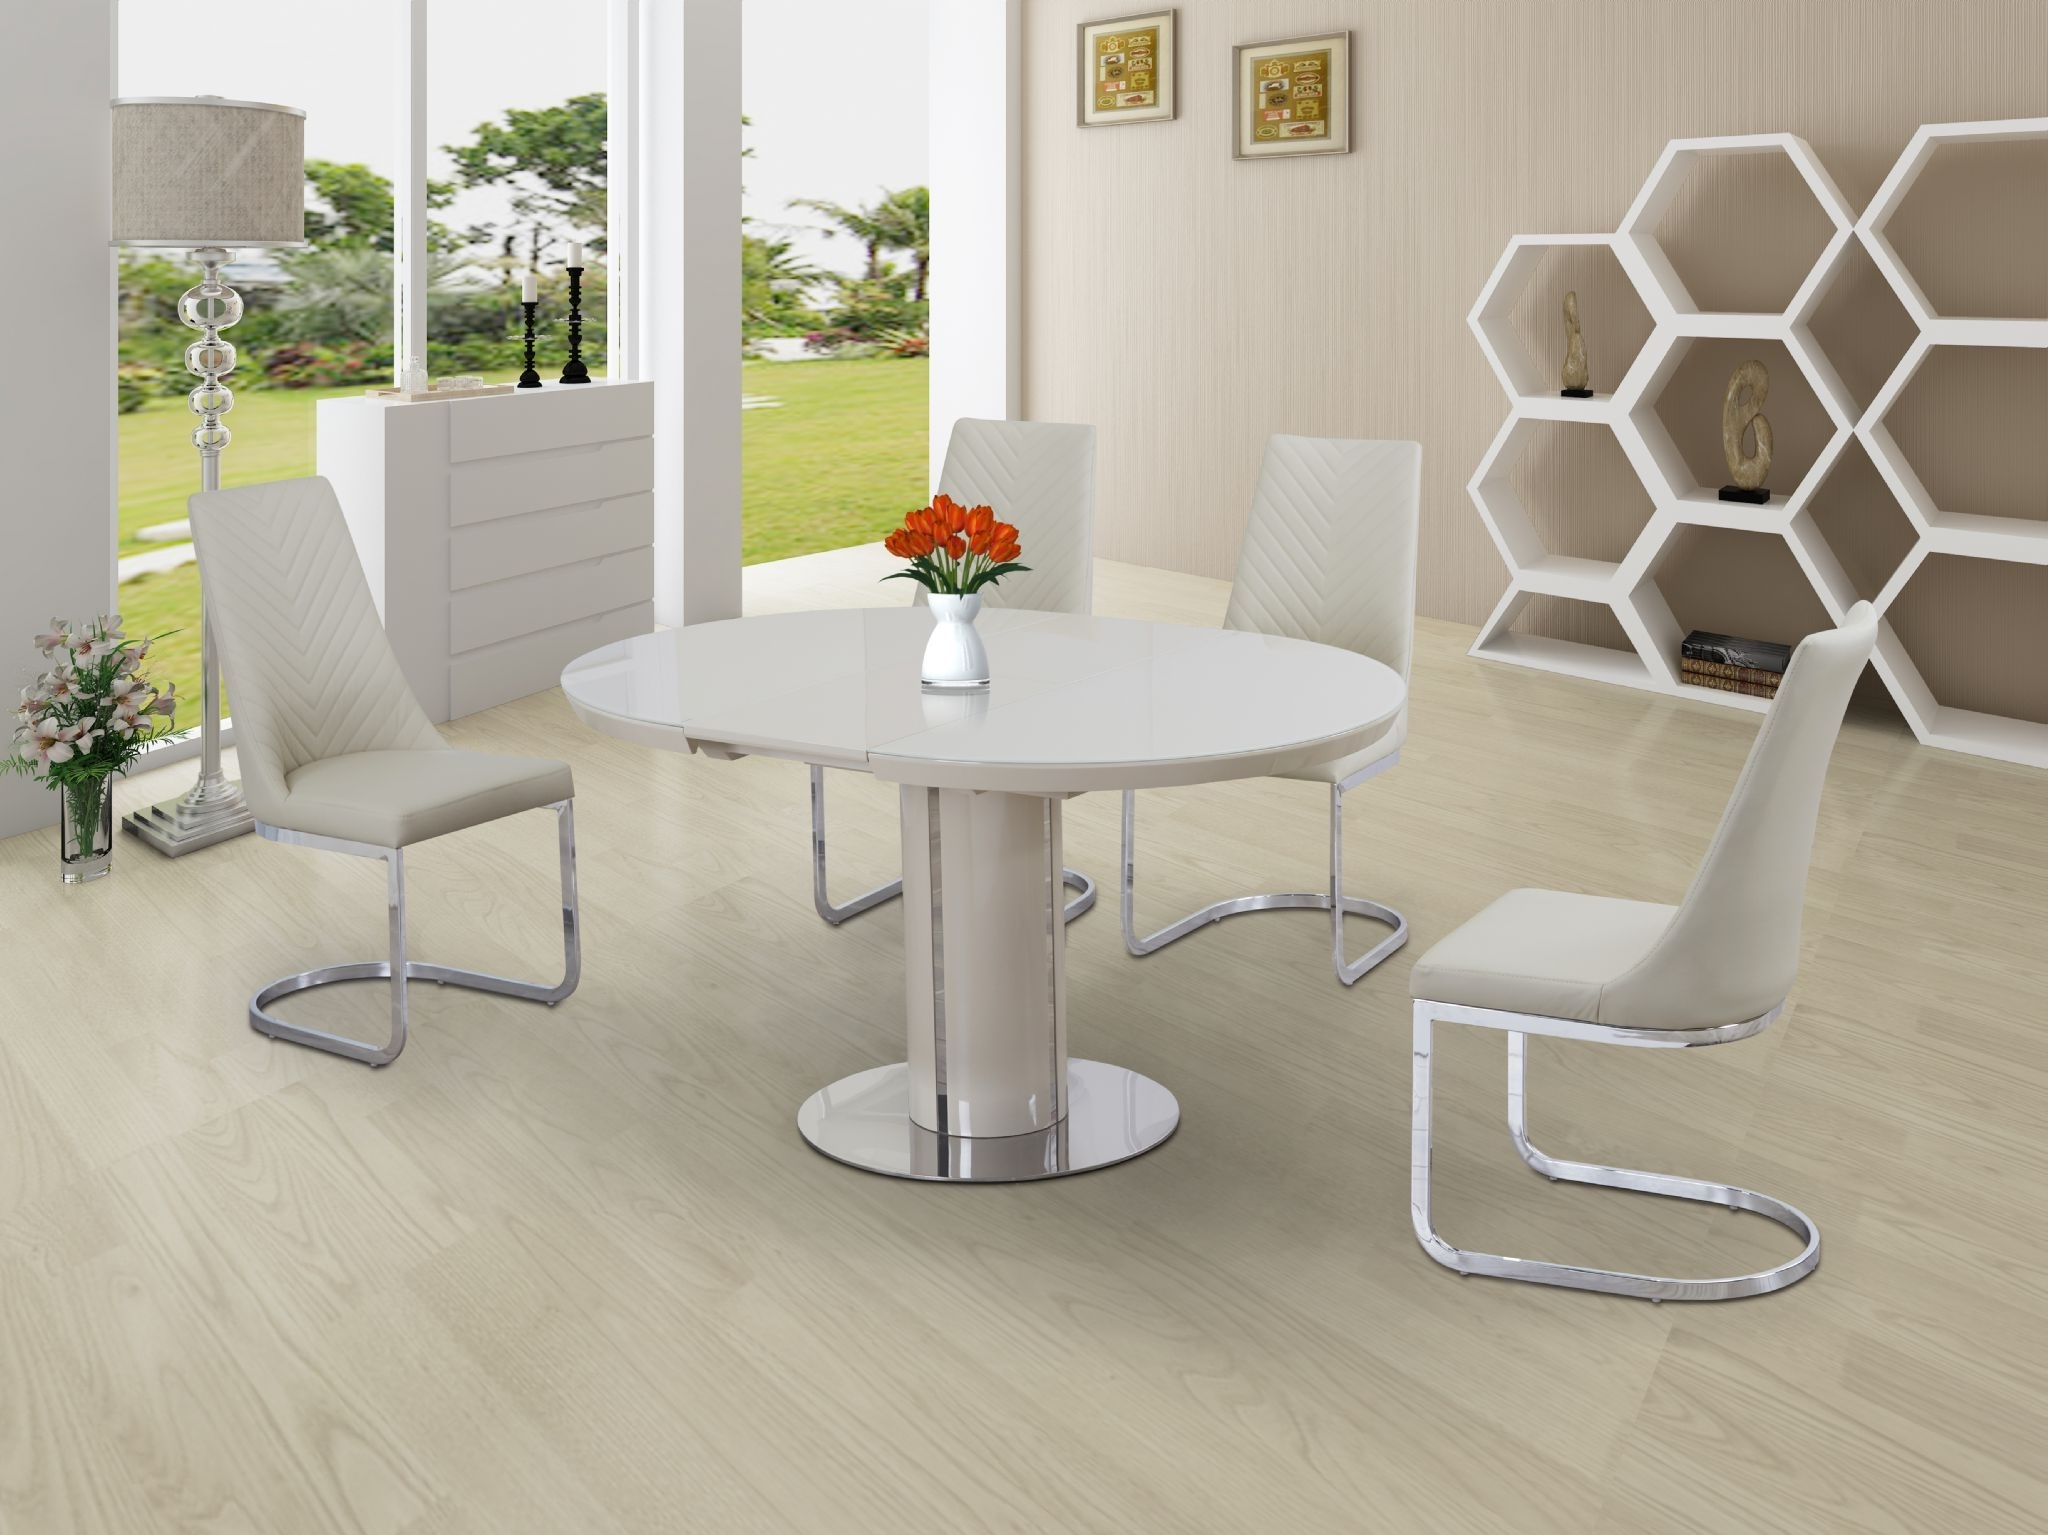 Latest White Round Extendable Dining Tables Pertaining To Buy Cream Small Round Extendable Dining Table Today (View 6 of 25)